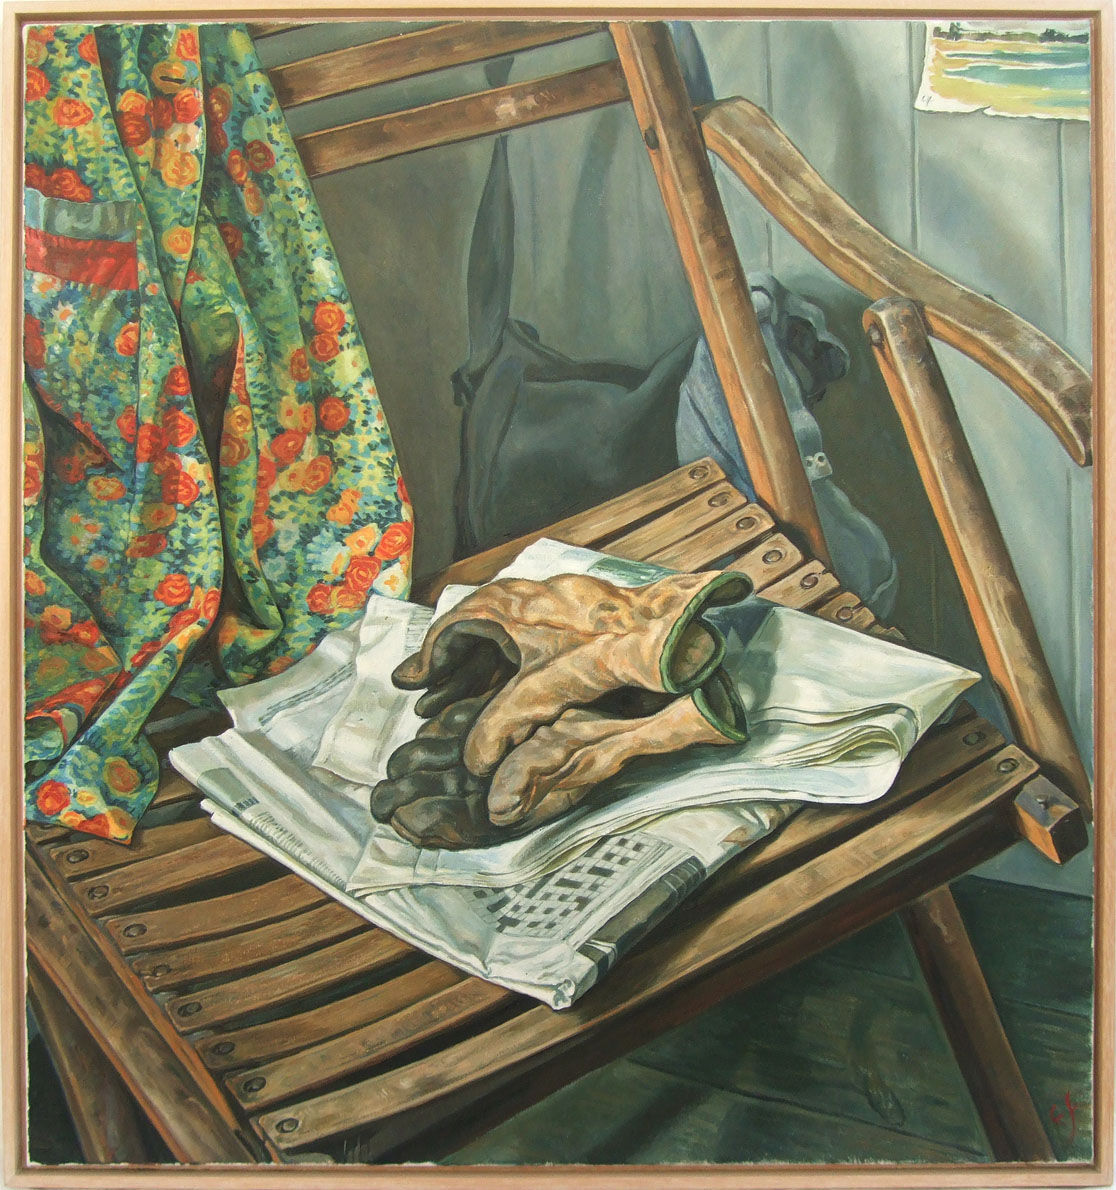 Garden gloves and newspaper on Tristram's chair